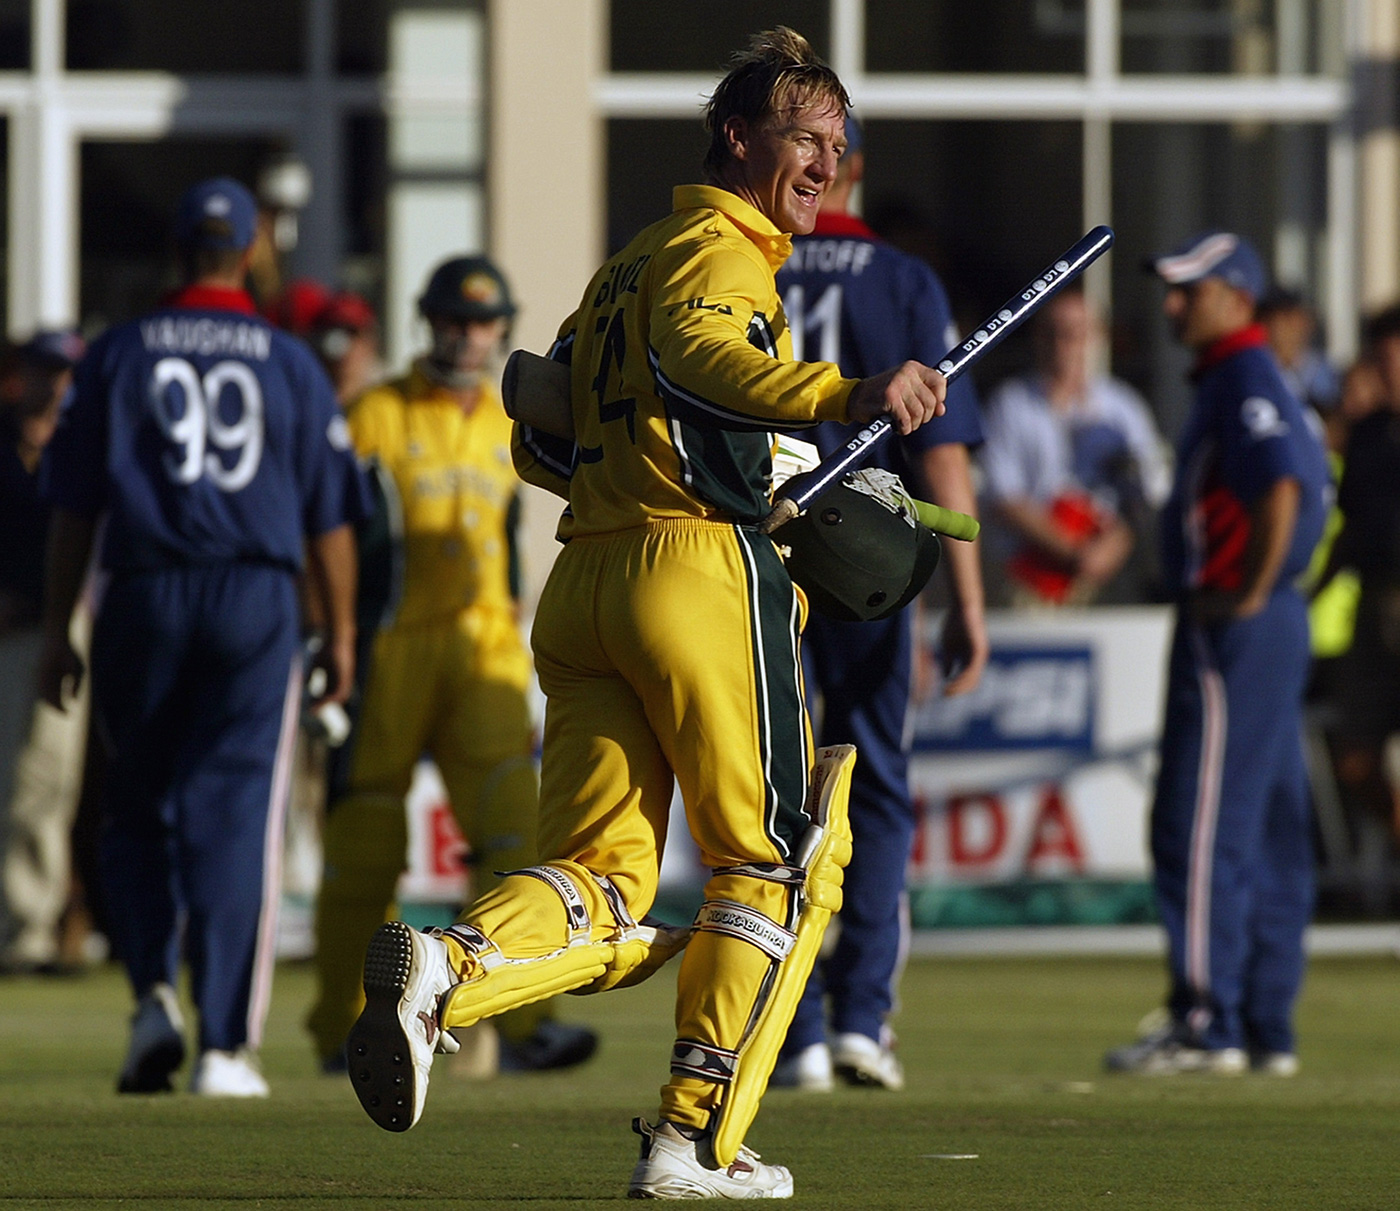 Andy Bichel runs holding a stump after Australia's victory